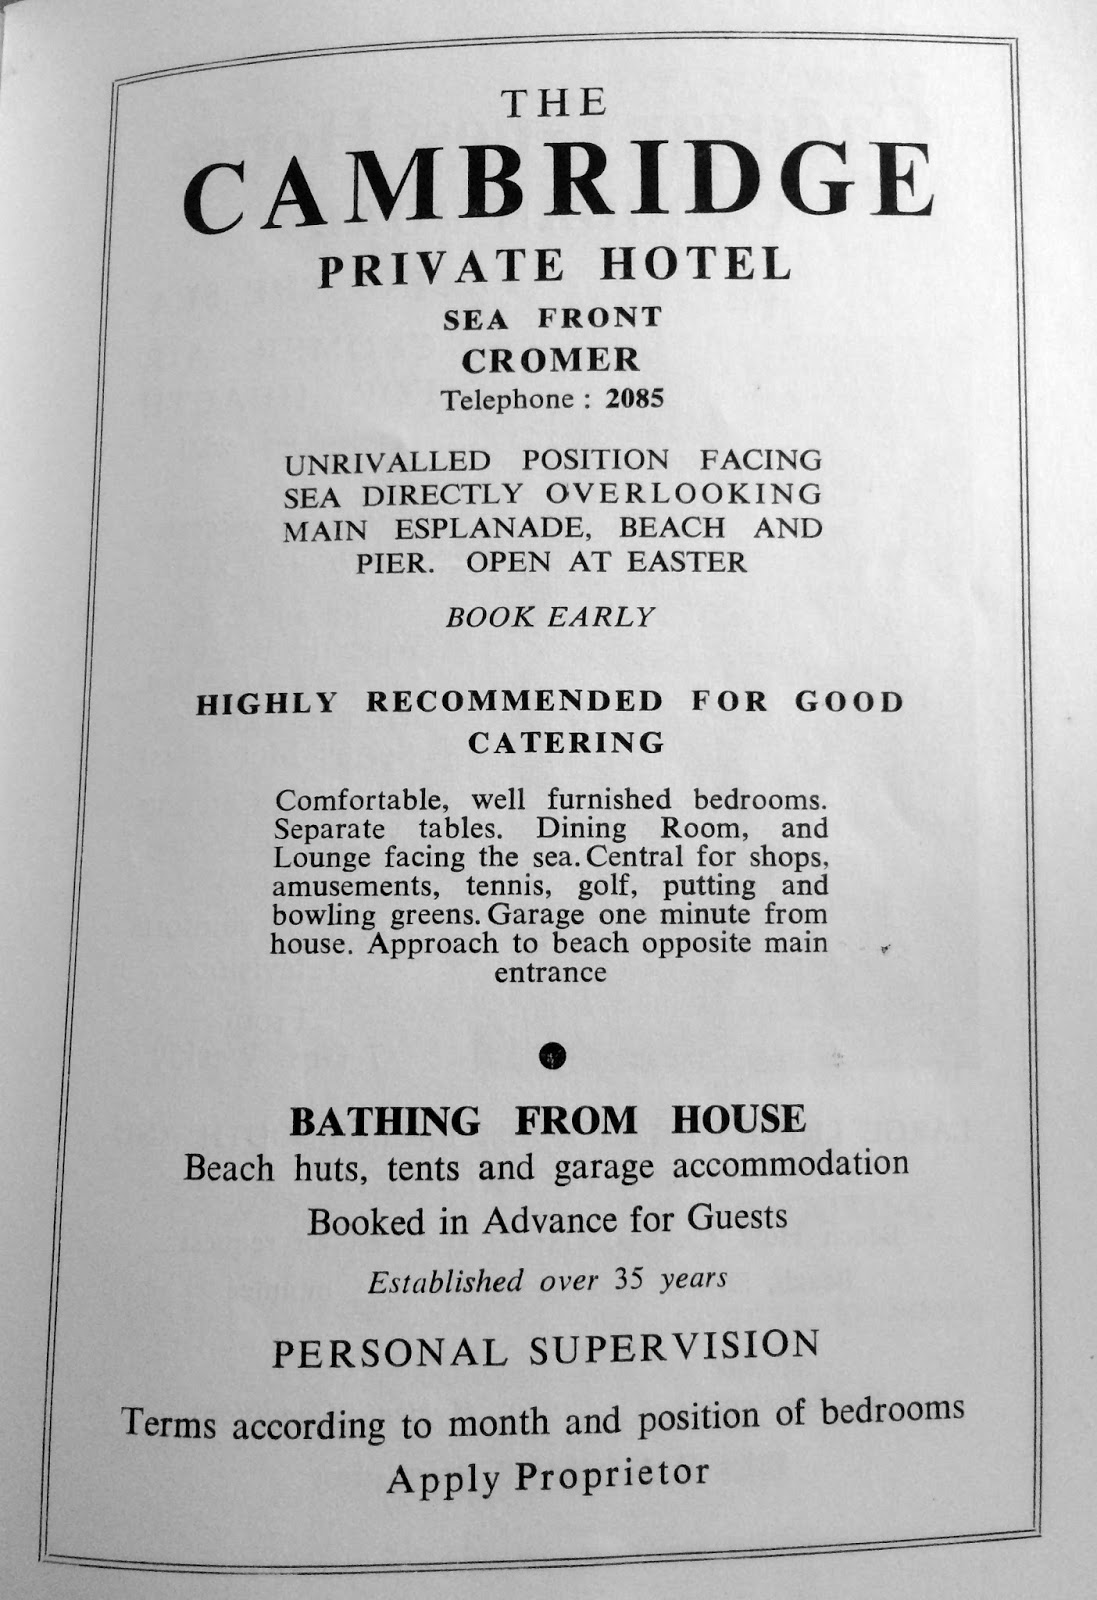 DrMattKerry's Blog: Cromer Official Guide, 1965 (Part 3)